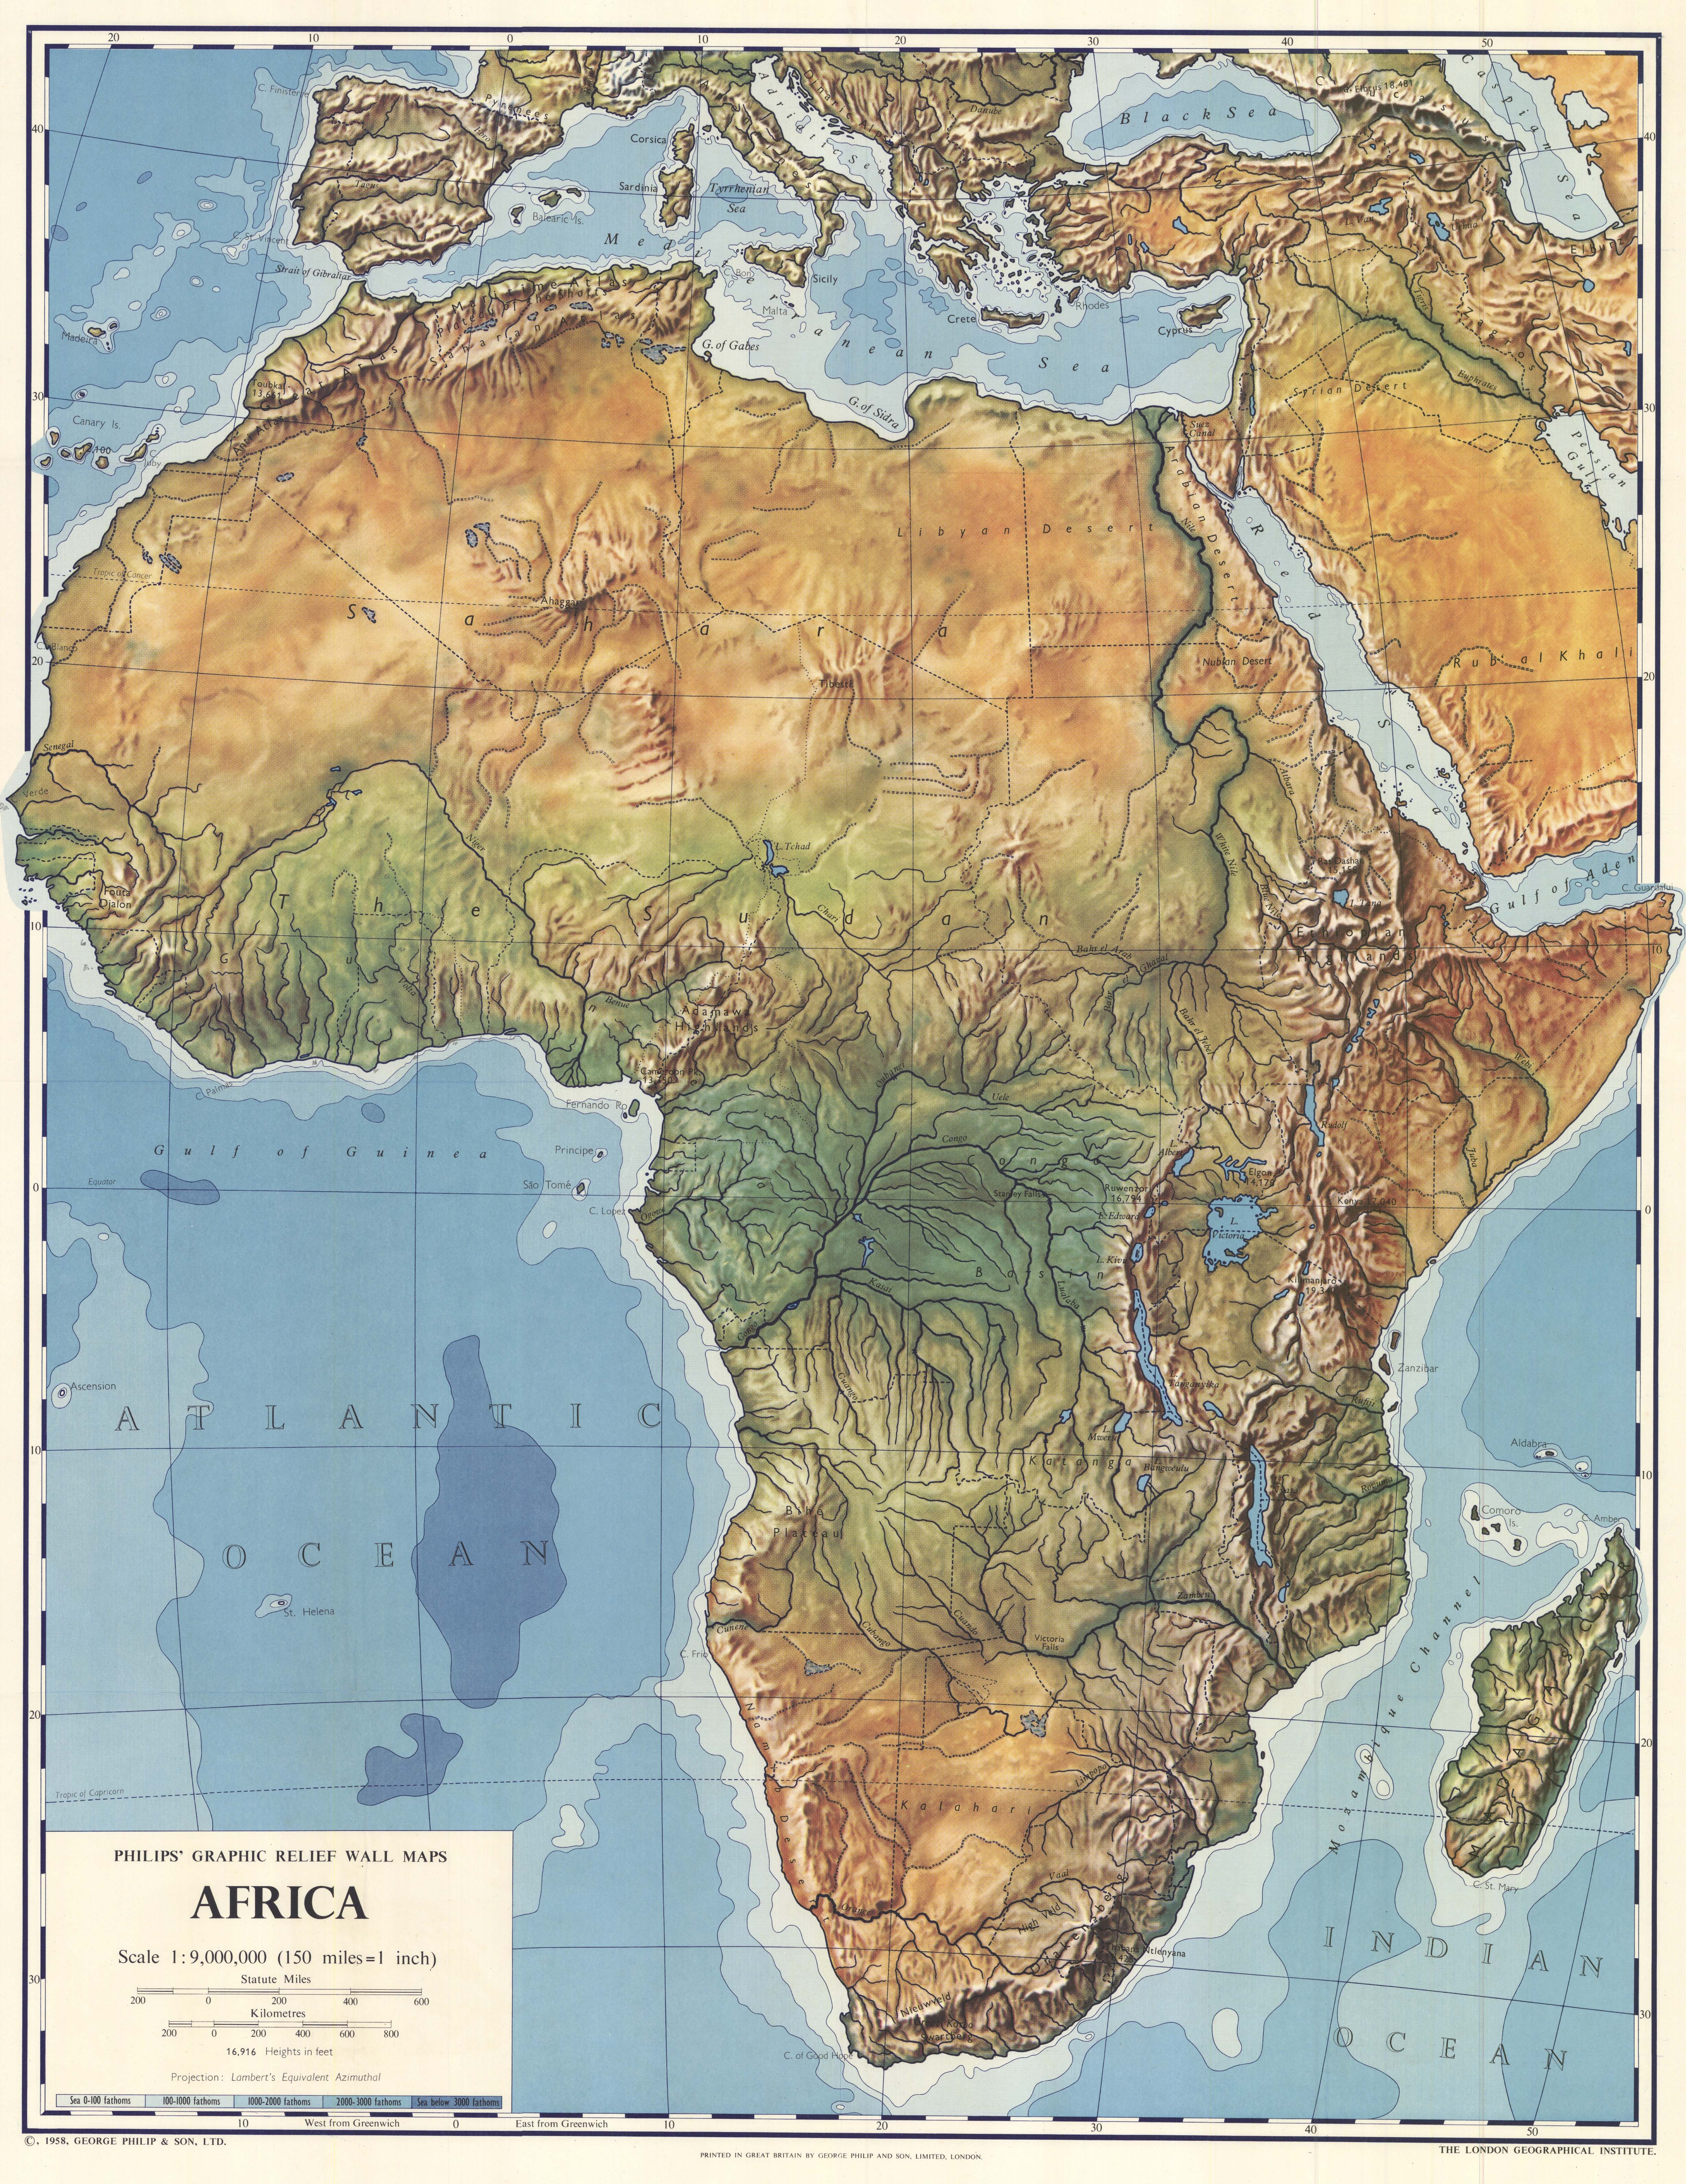 Africa physical map 1958 - Full size